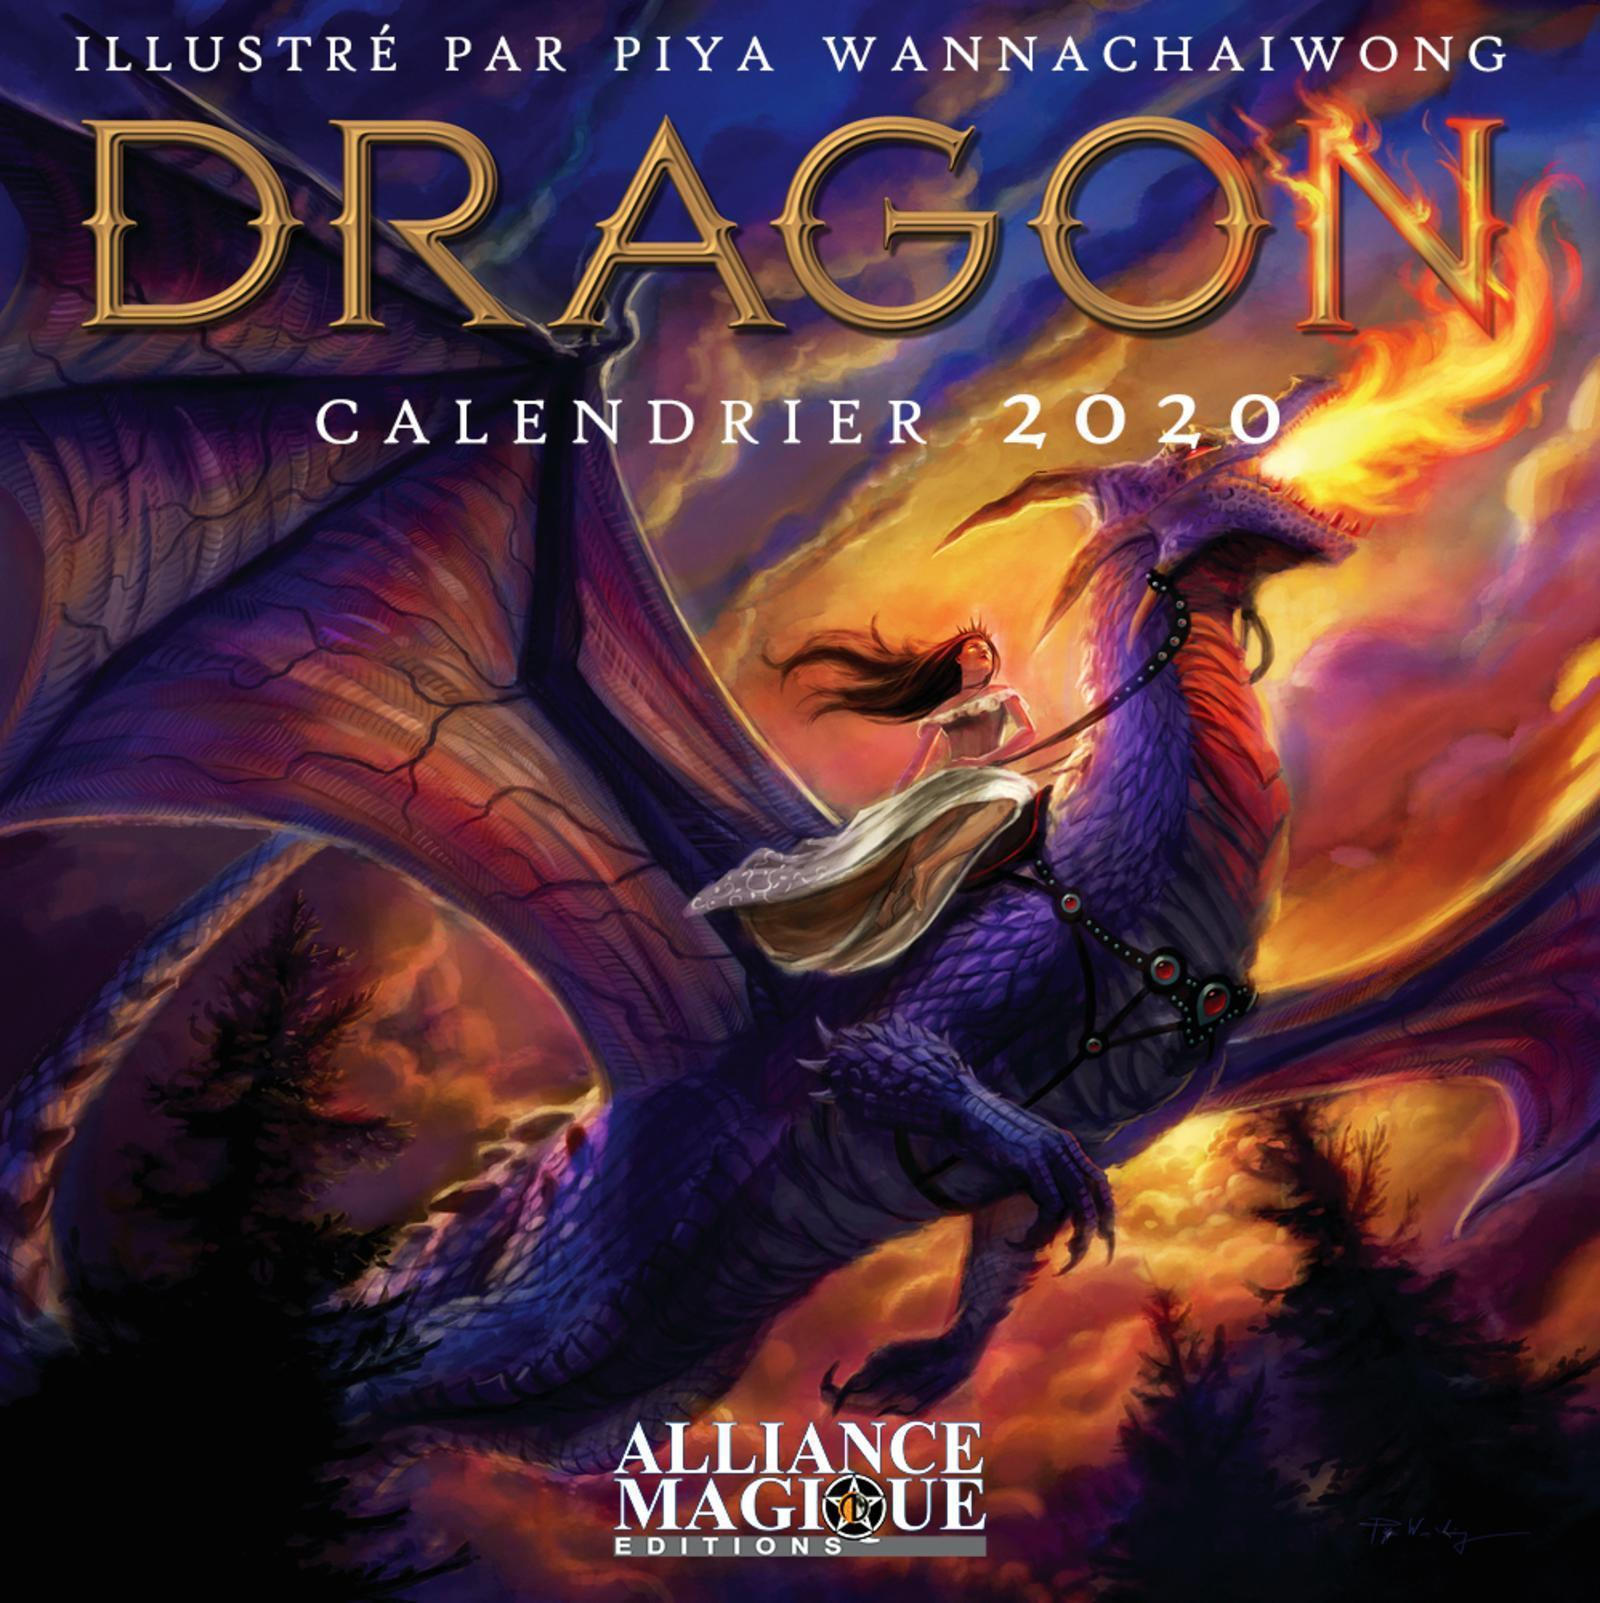 CALENDRIER DES DRAGONS 2020